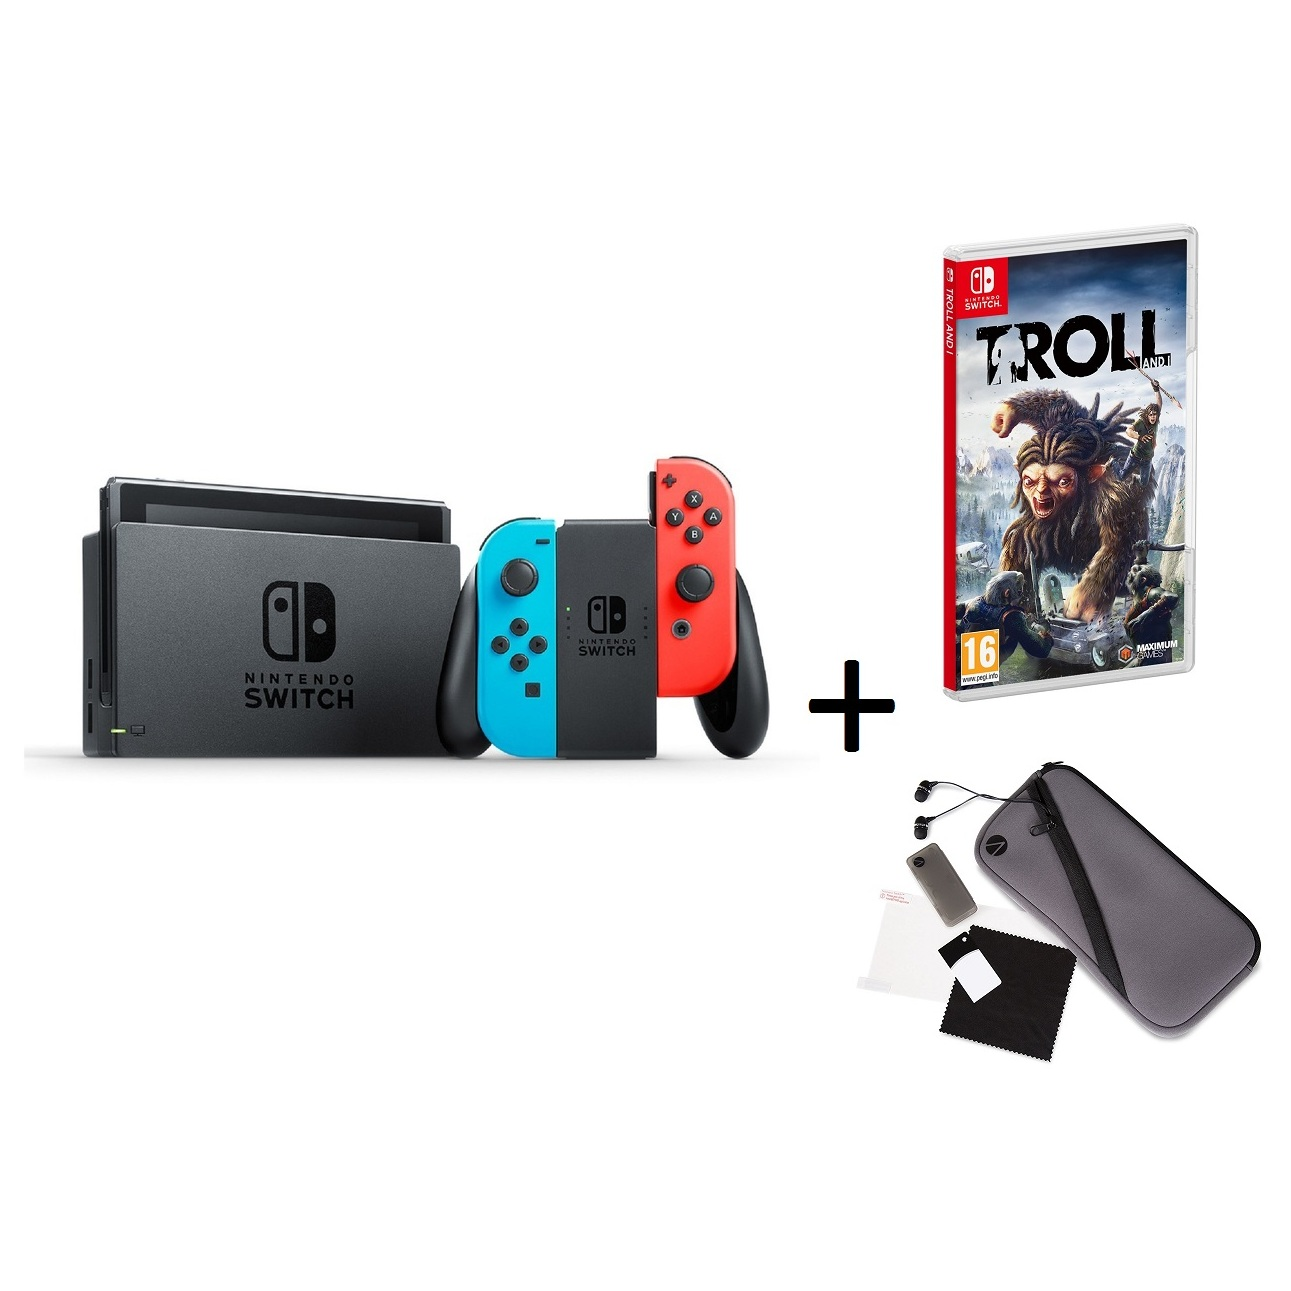 Nintendo Switch Console 32gb Red Super Mario Odyssey Game 2 Grey Bundle 2game 2amiibo With Neon Joy Con Stealth Sw1001 Starter Pack Troll I